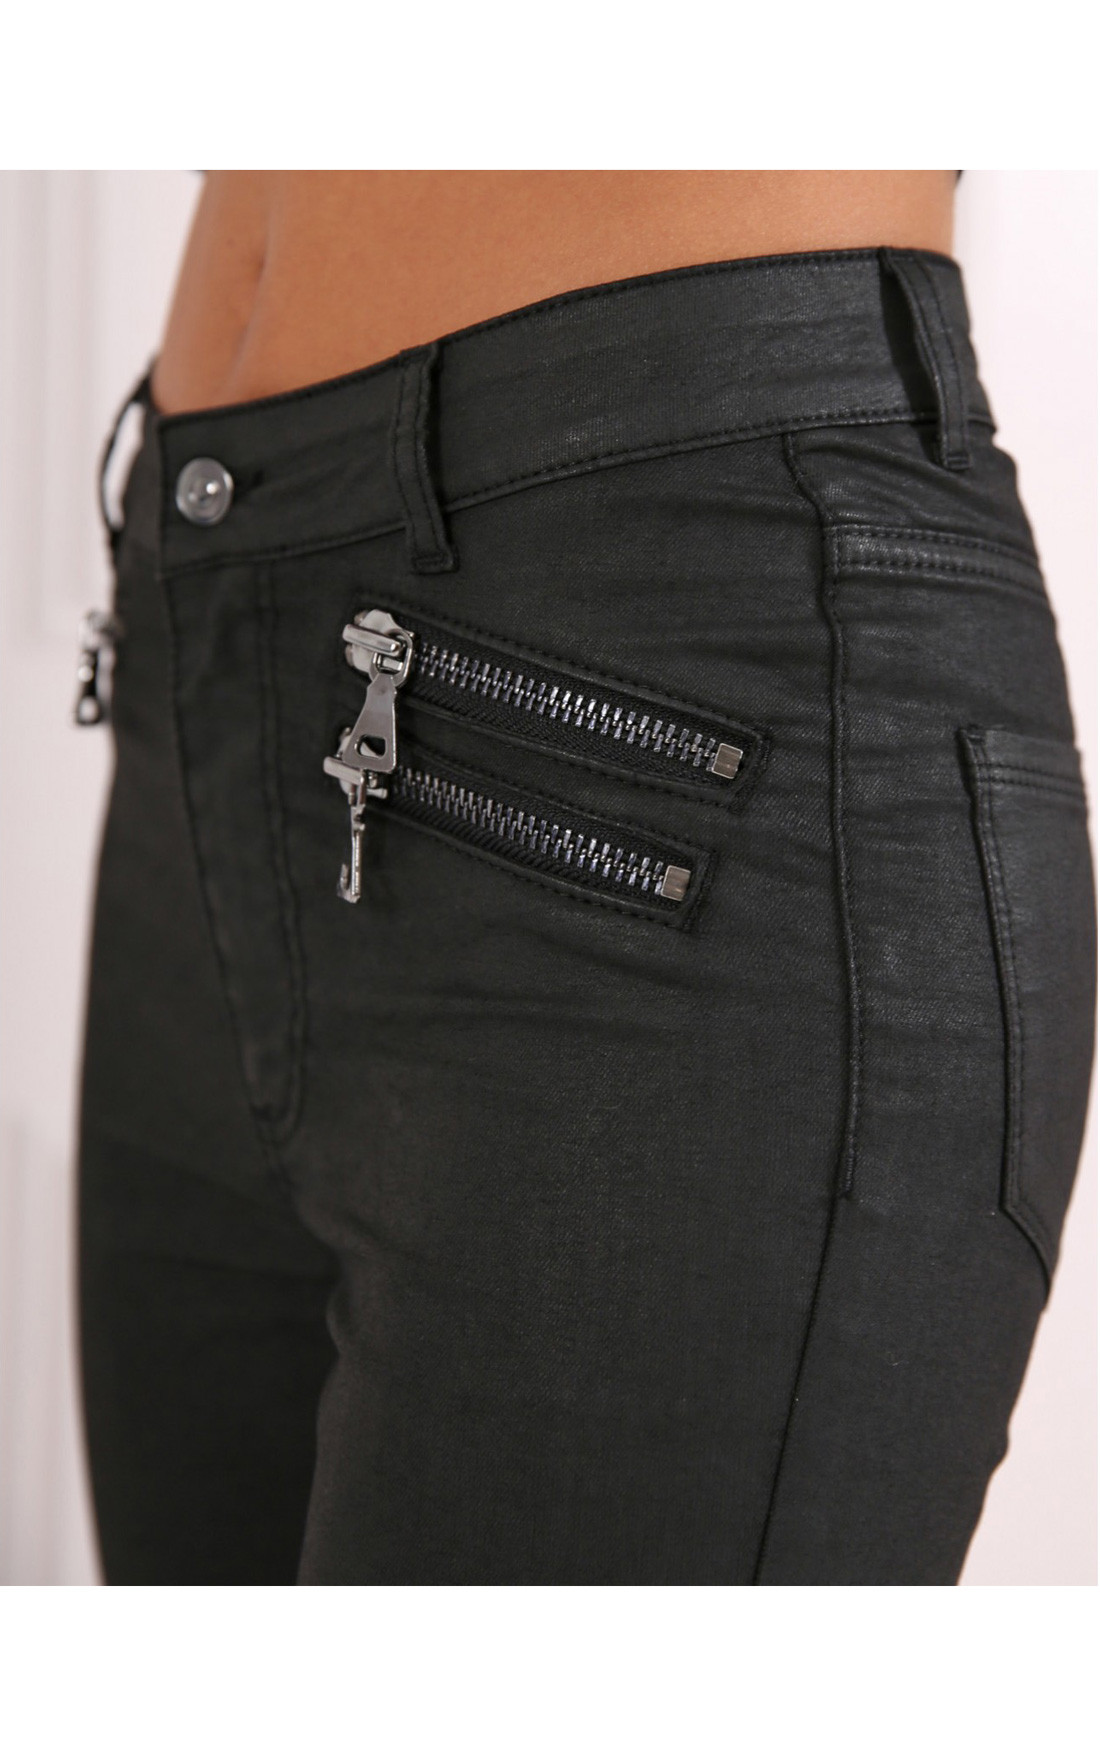 Womens Size 16 Jeans